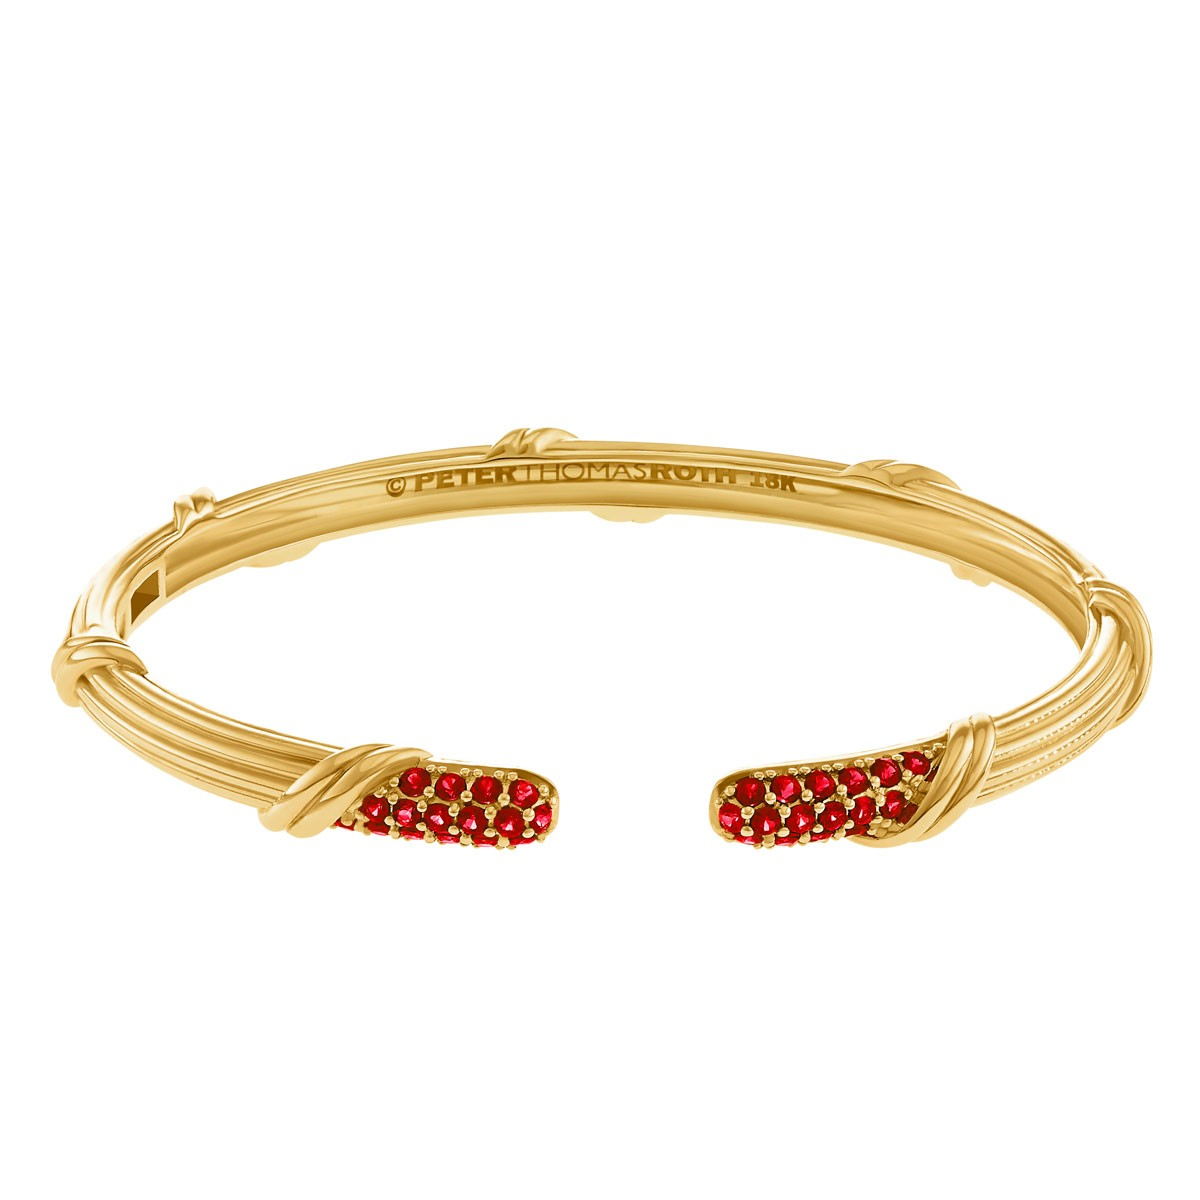 Heritage Pave Cuff with garnet in 18K yellow gold